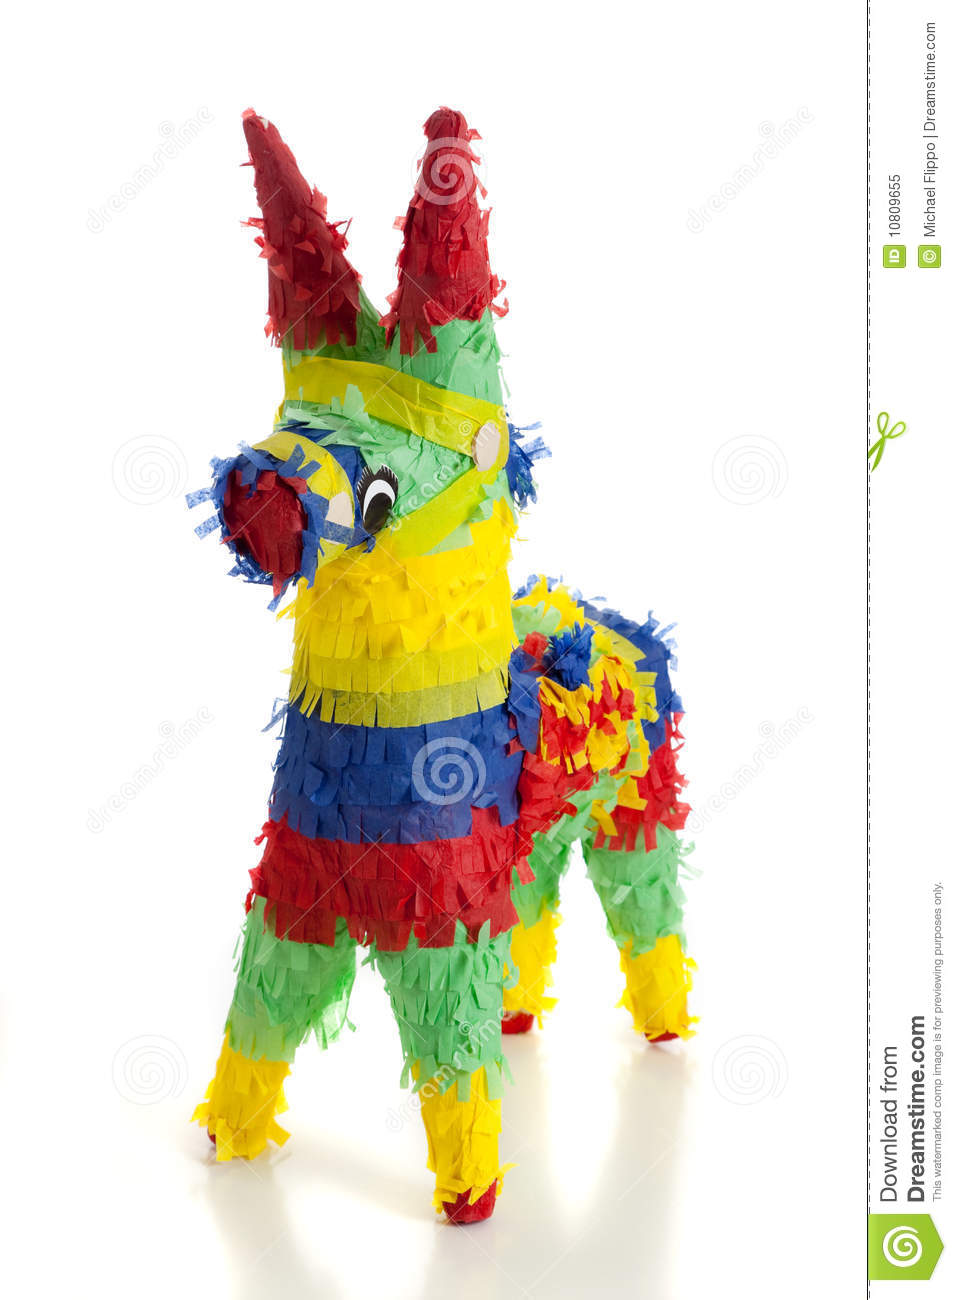 Birthday Party Background A Traditional Mexican Pinata On White Royalty Free Stock